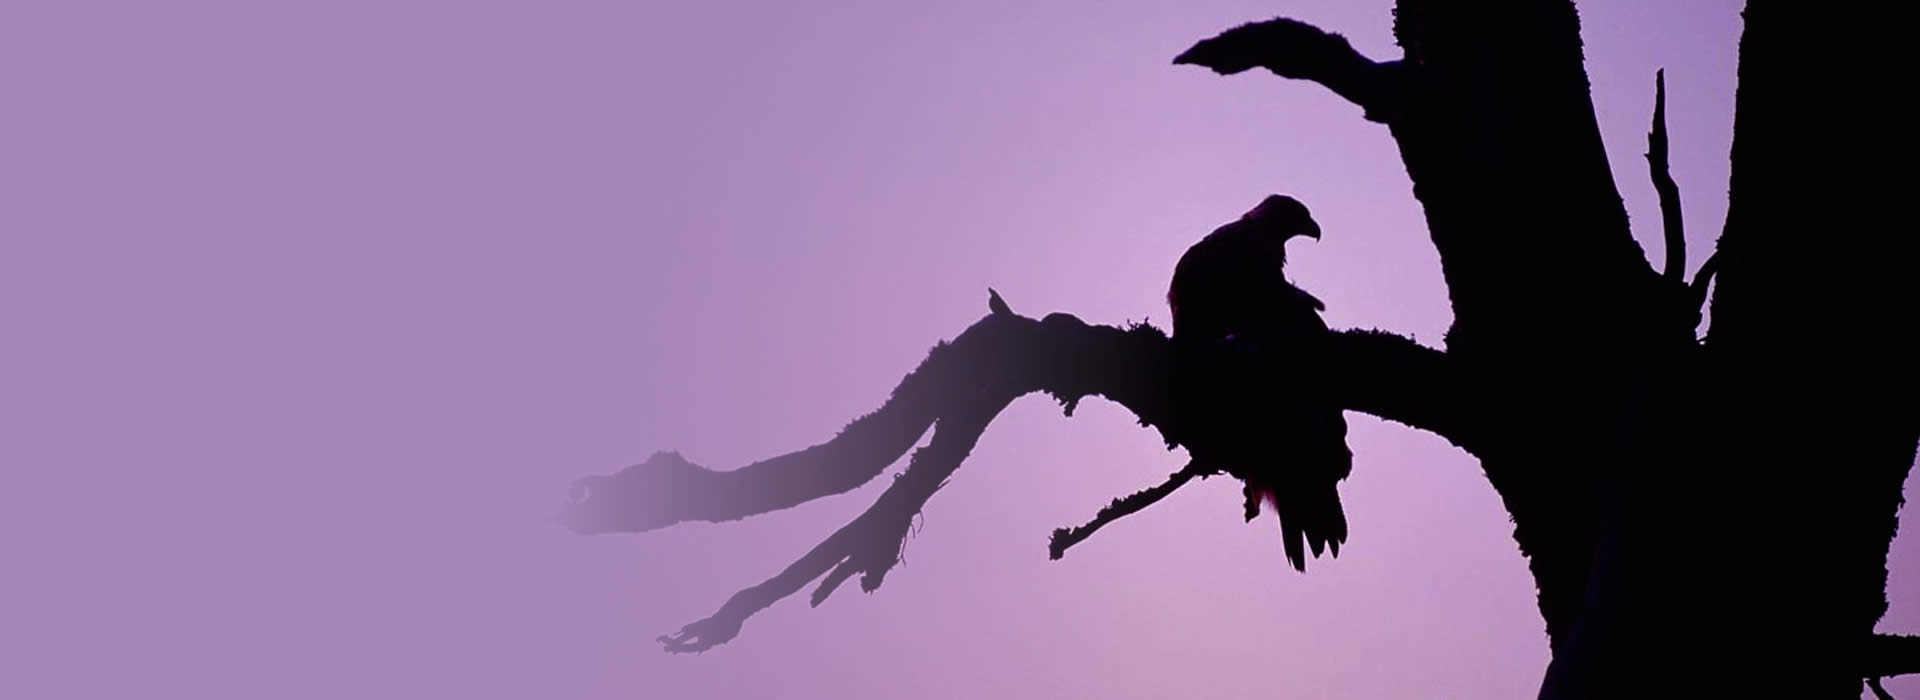 Silhouetted Eagle